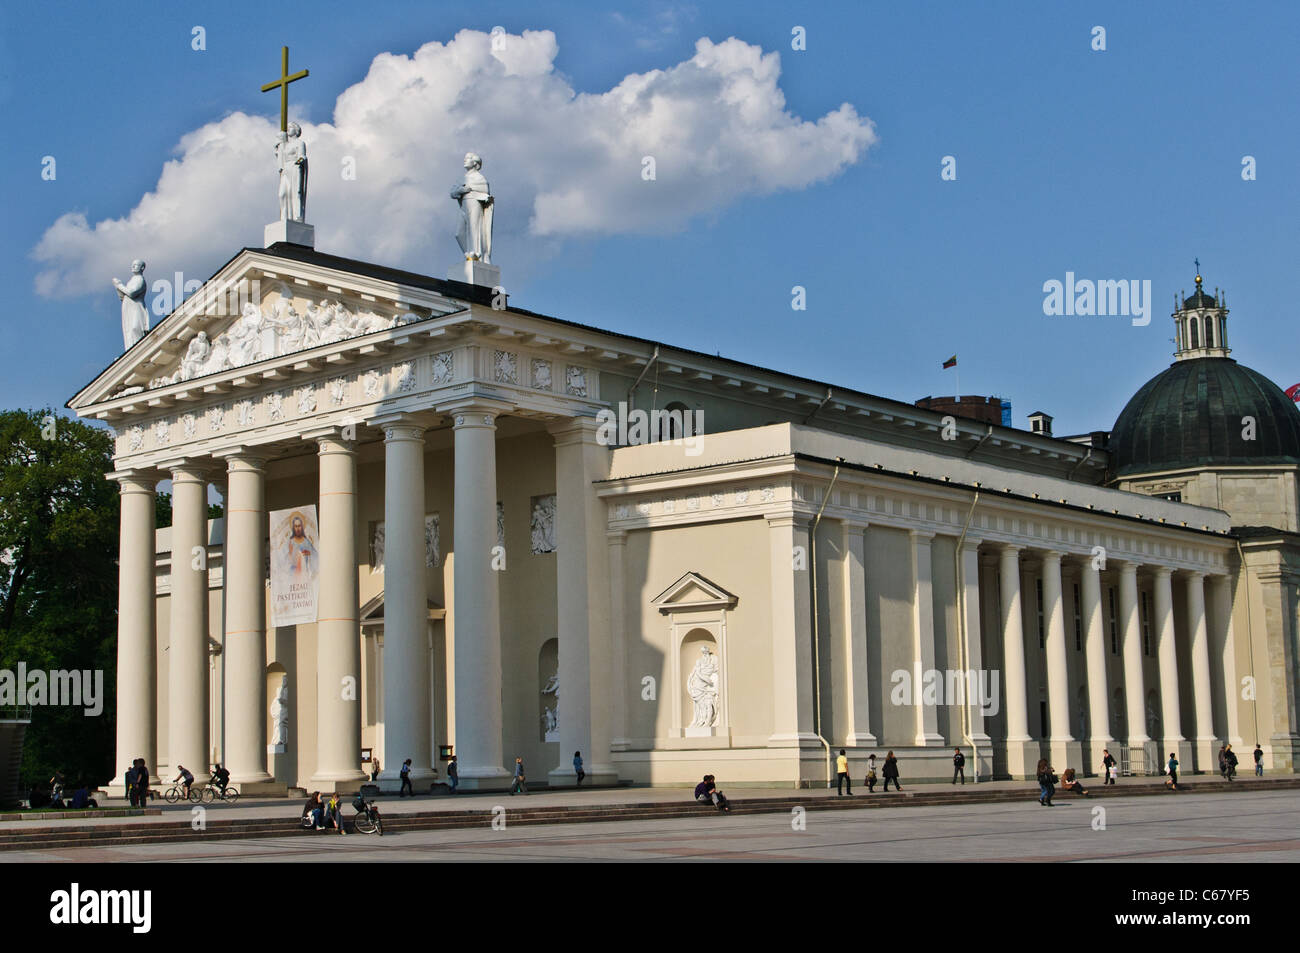 Saint Stanislaus Cathedral - Vilnius, Lithuania - Stock Image